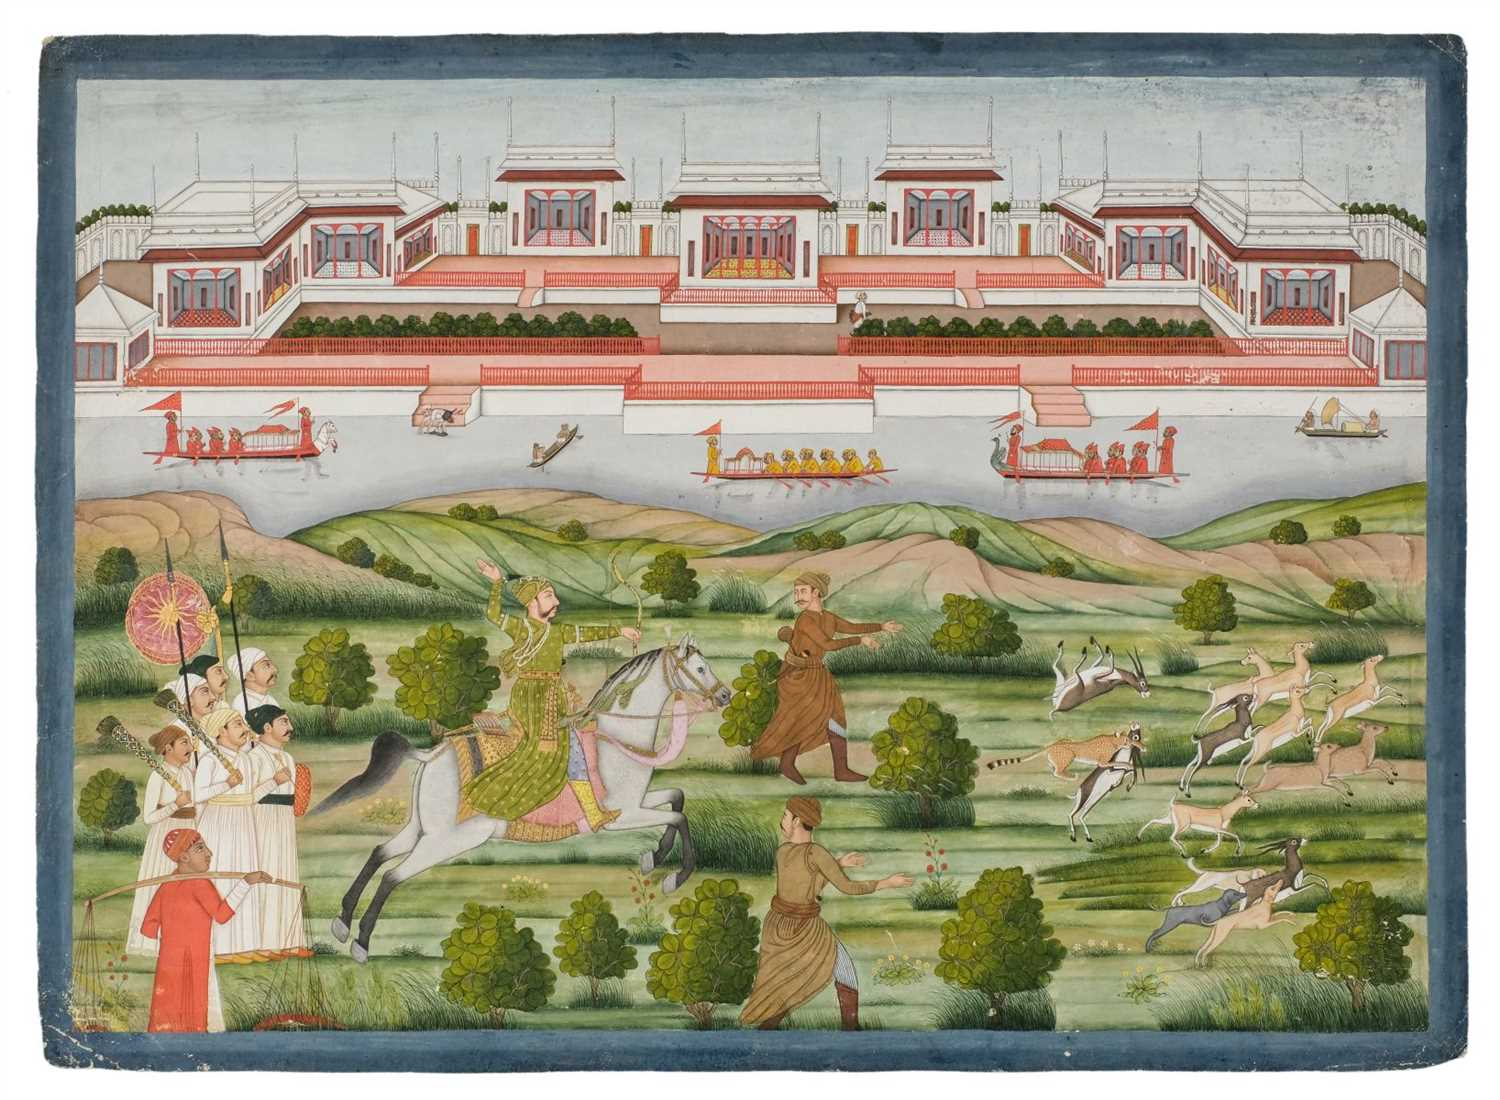 Lot 403-Provincial Mughal School. 'The Nabob Shujah al Dawlah on horse back', 1760